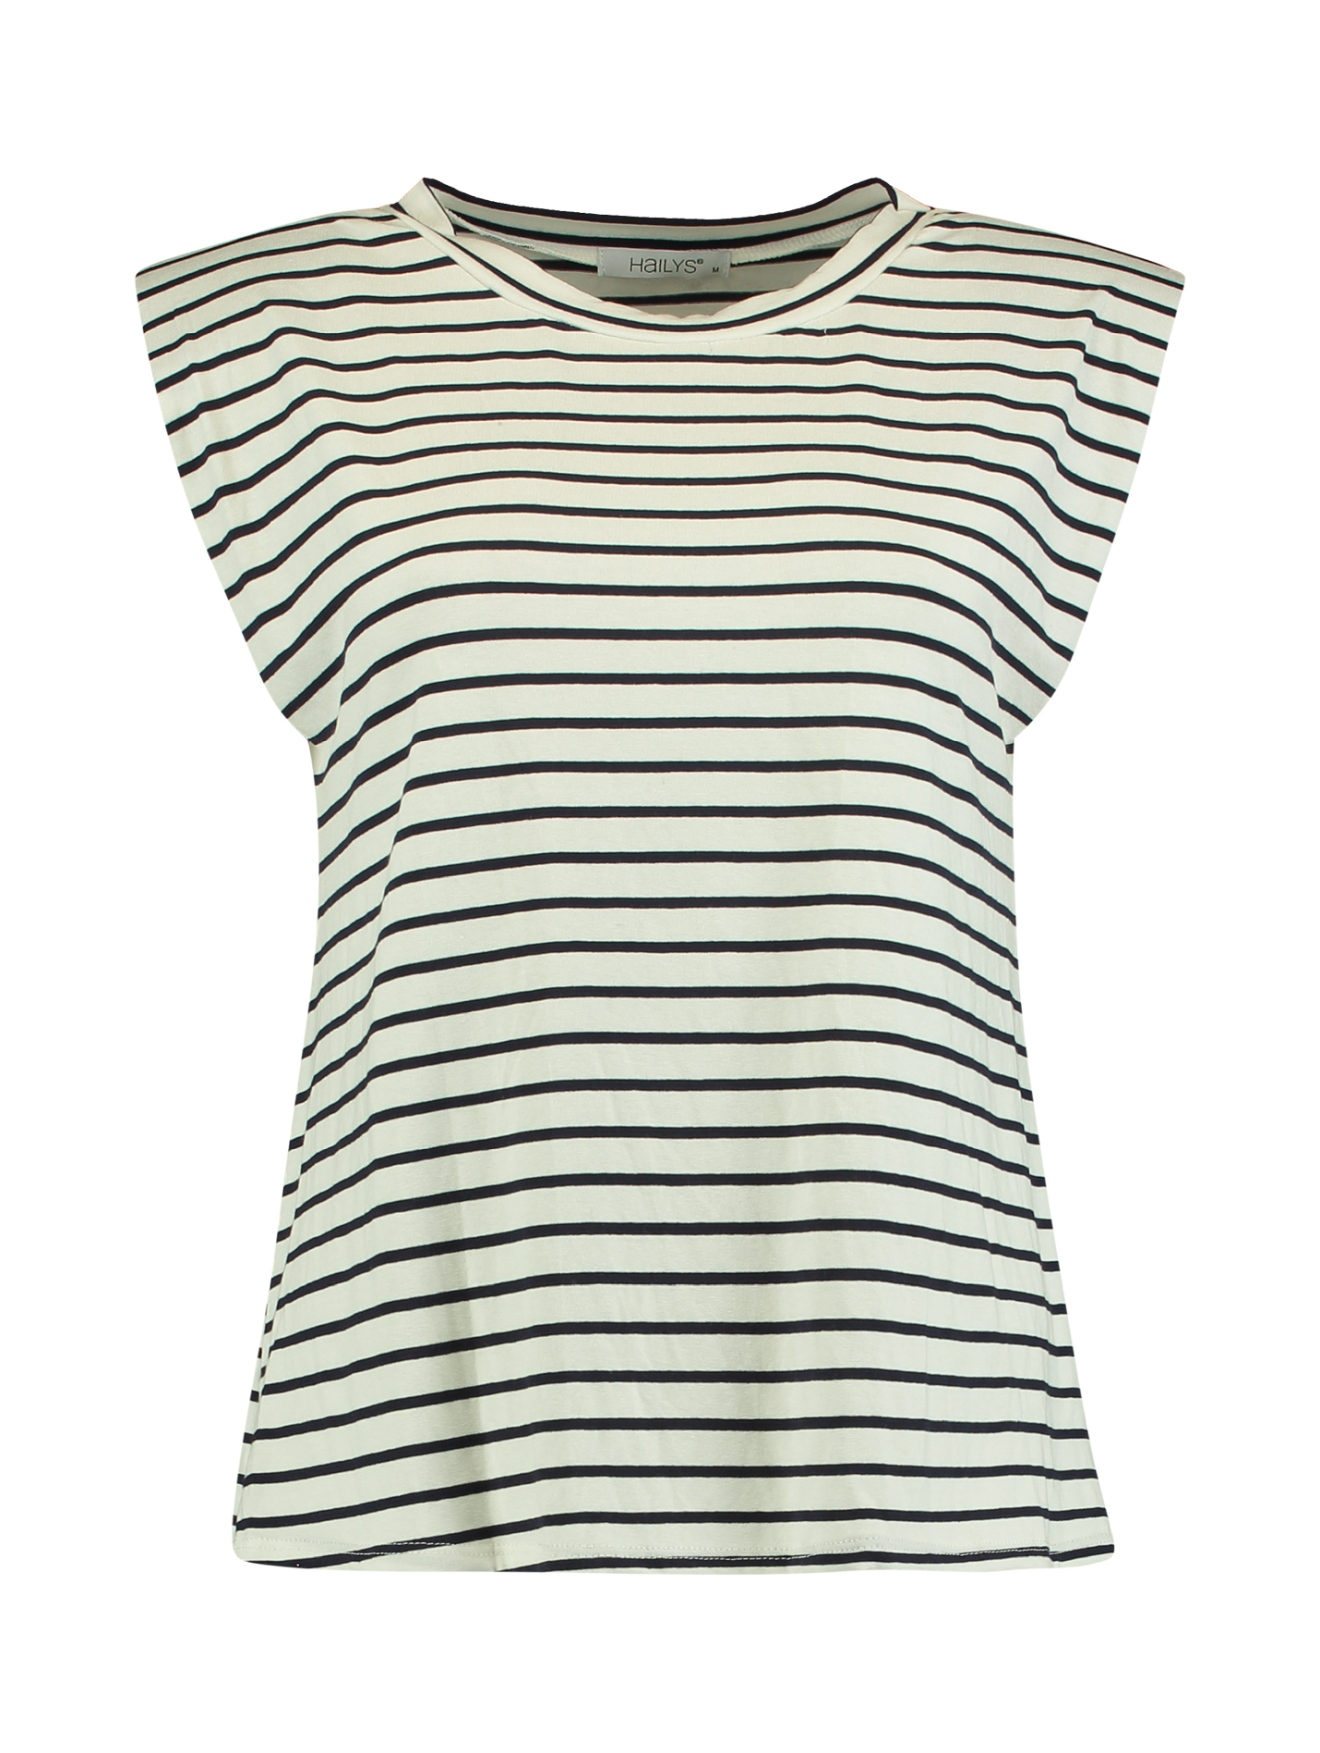 Hailys Shoulder Top Gini - Schulterpolster